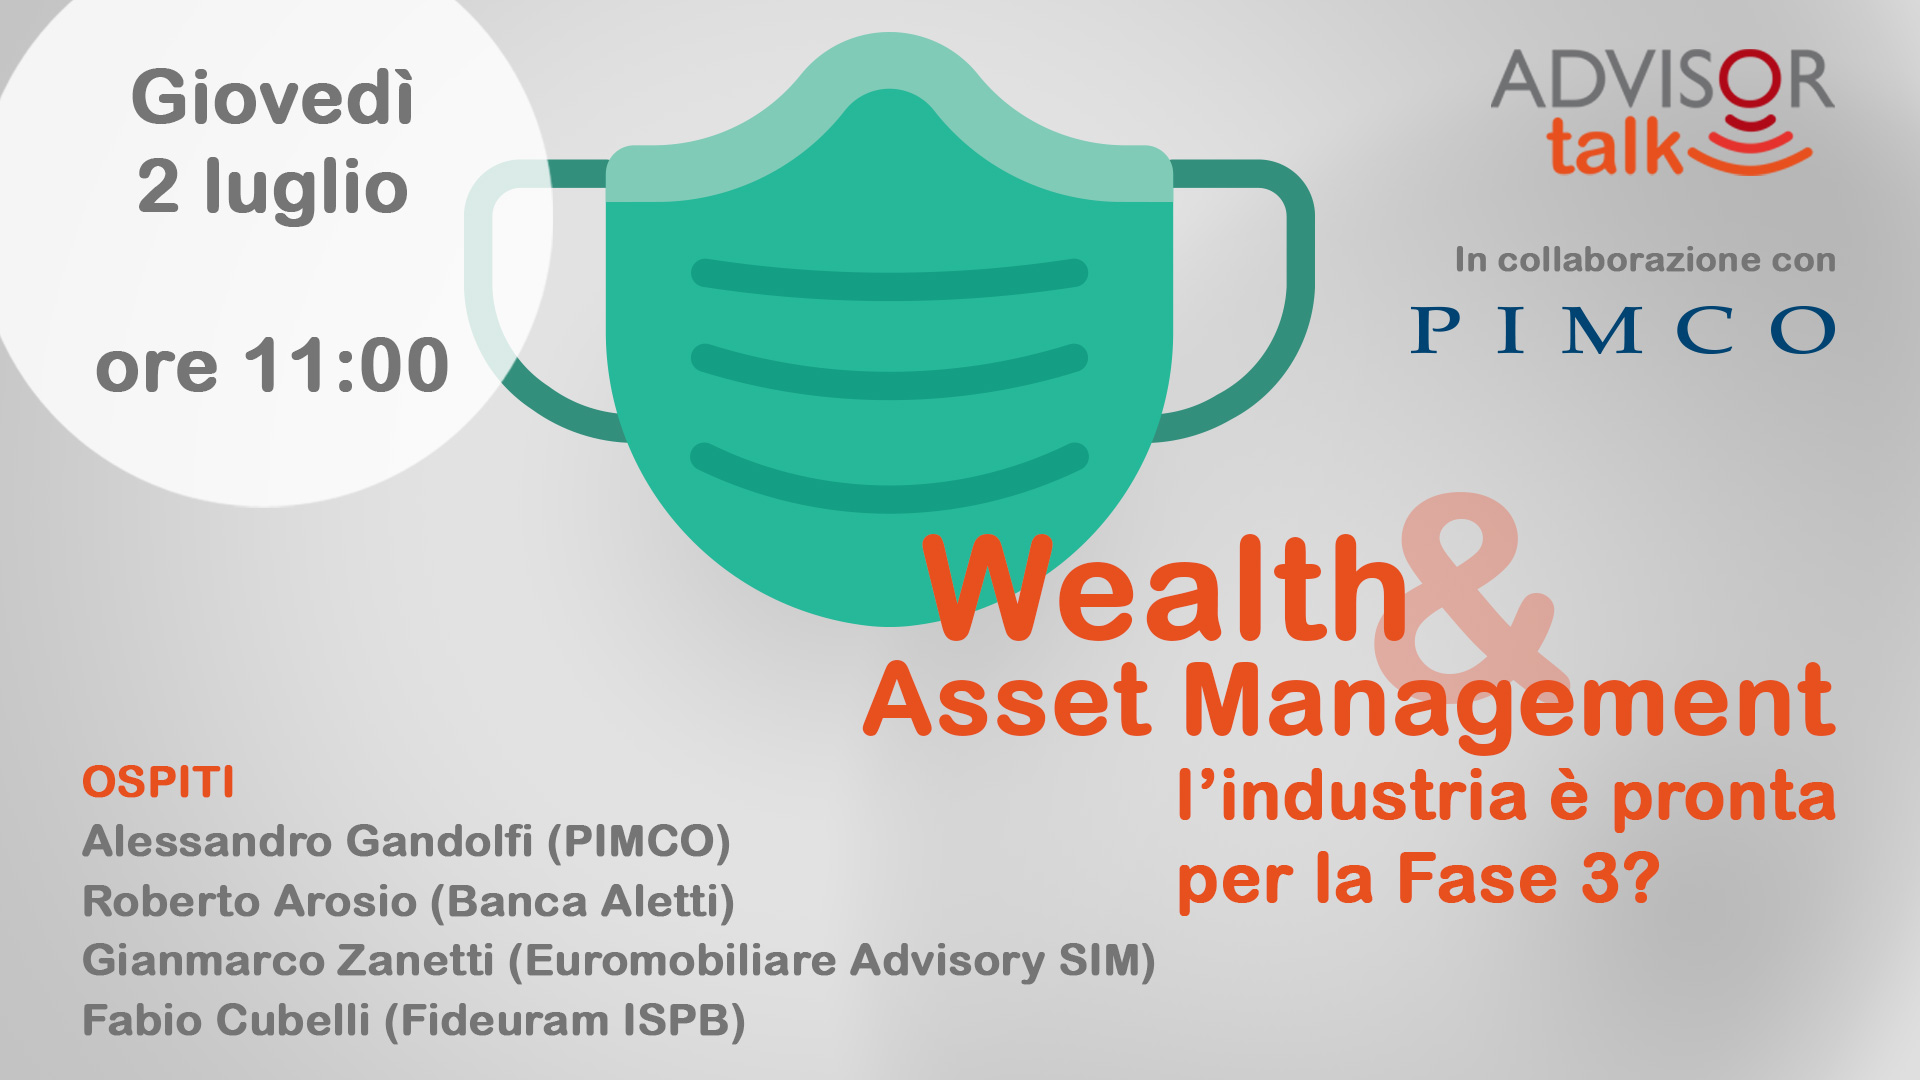 Wealth & Asset Management, l'industria è pronta per la Fase 3?